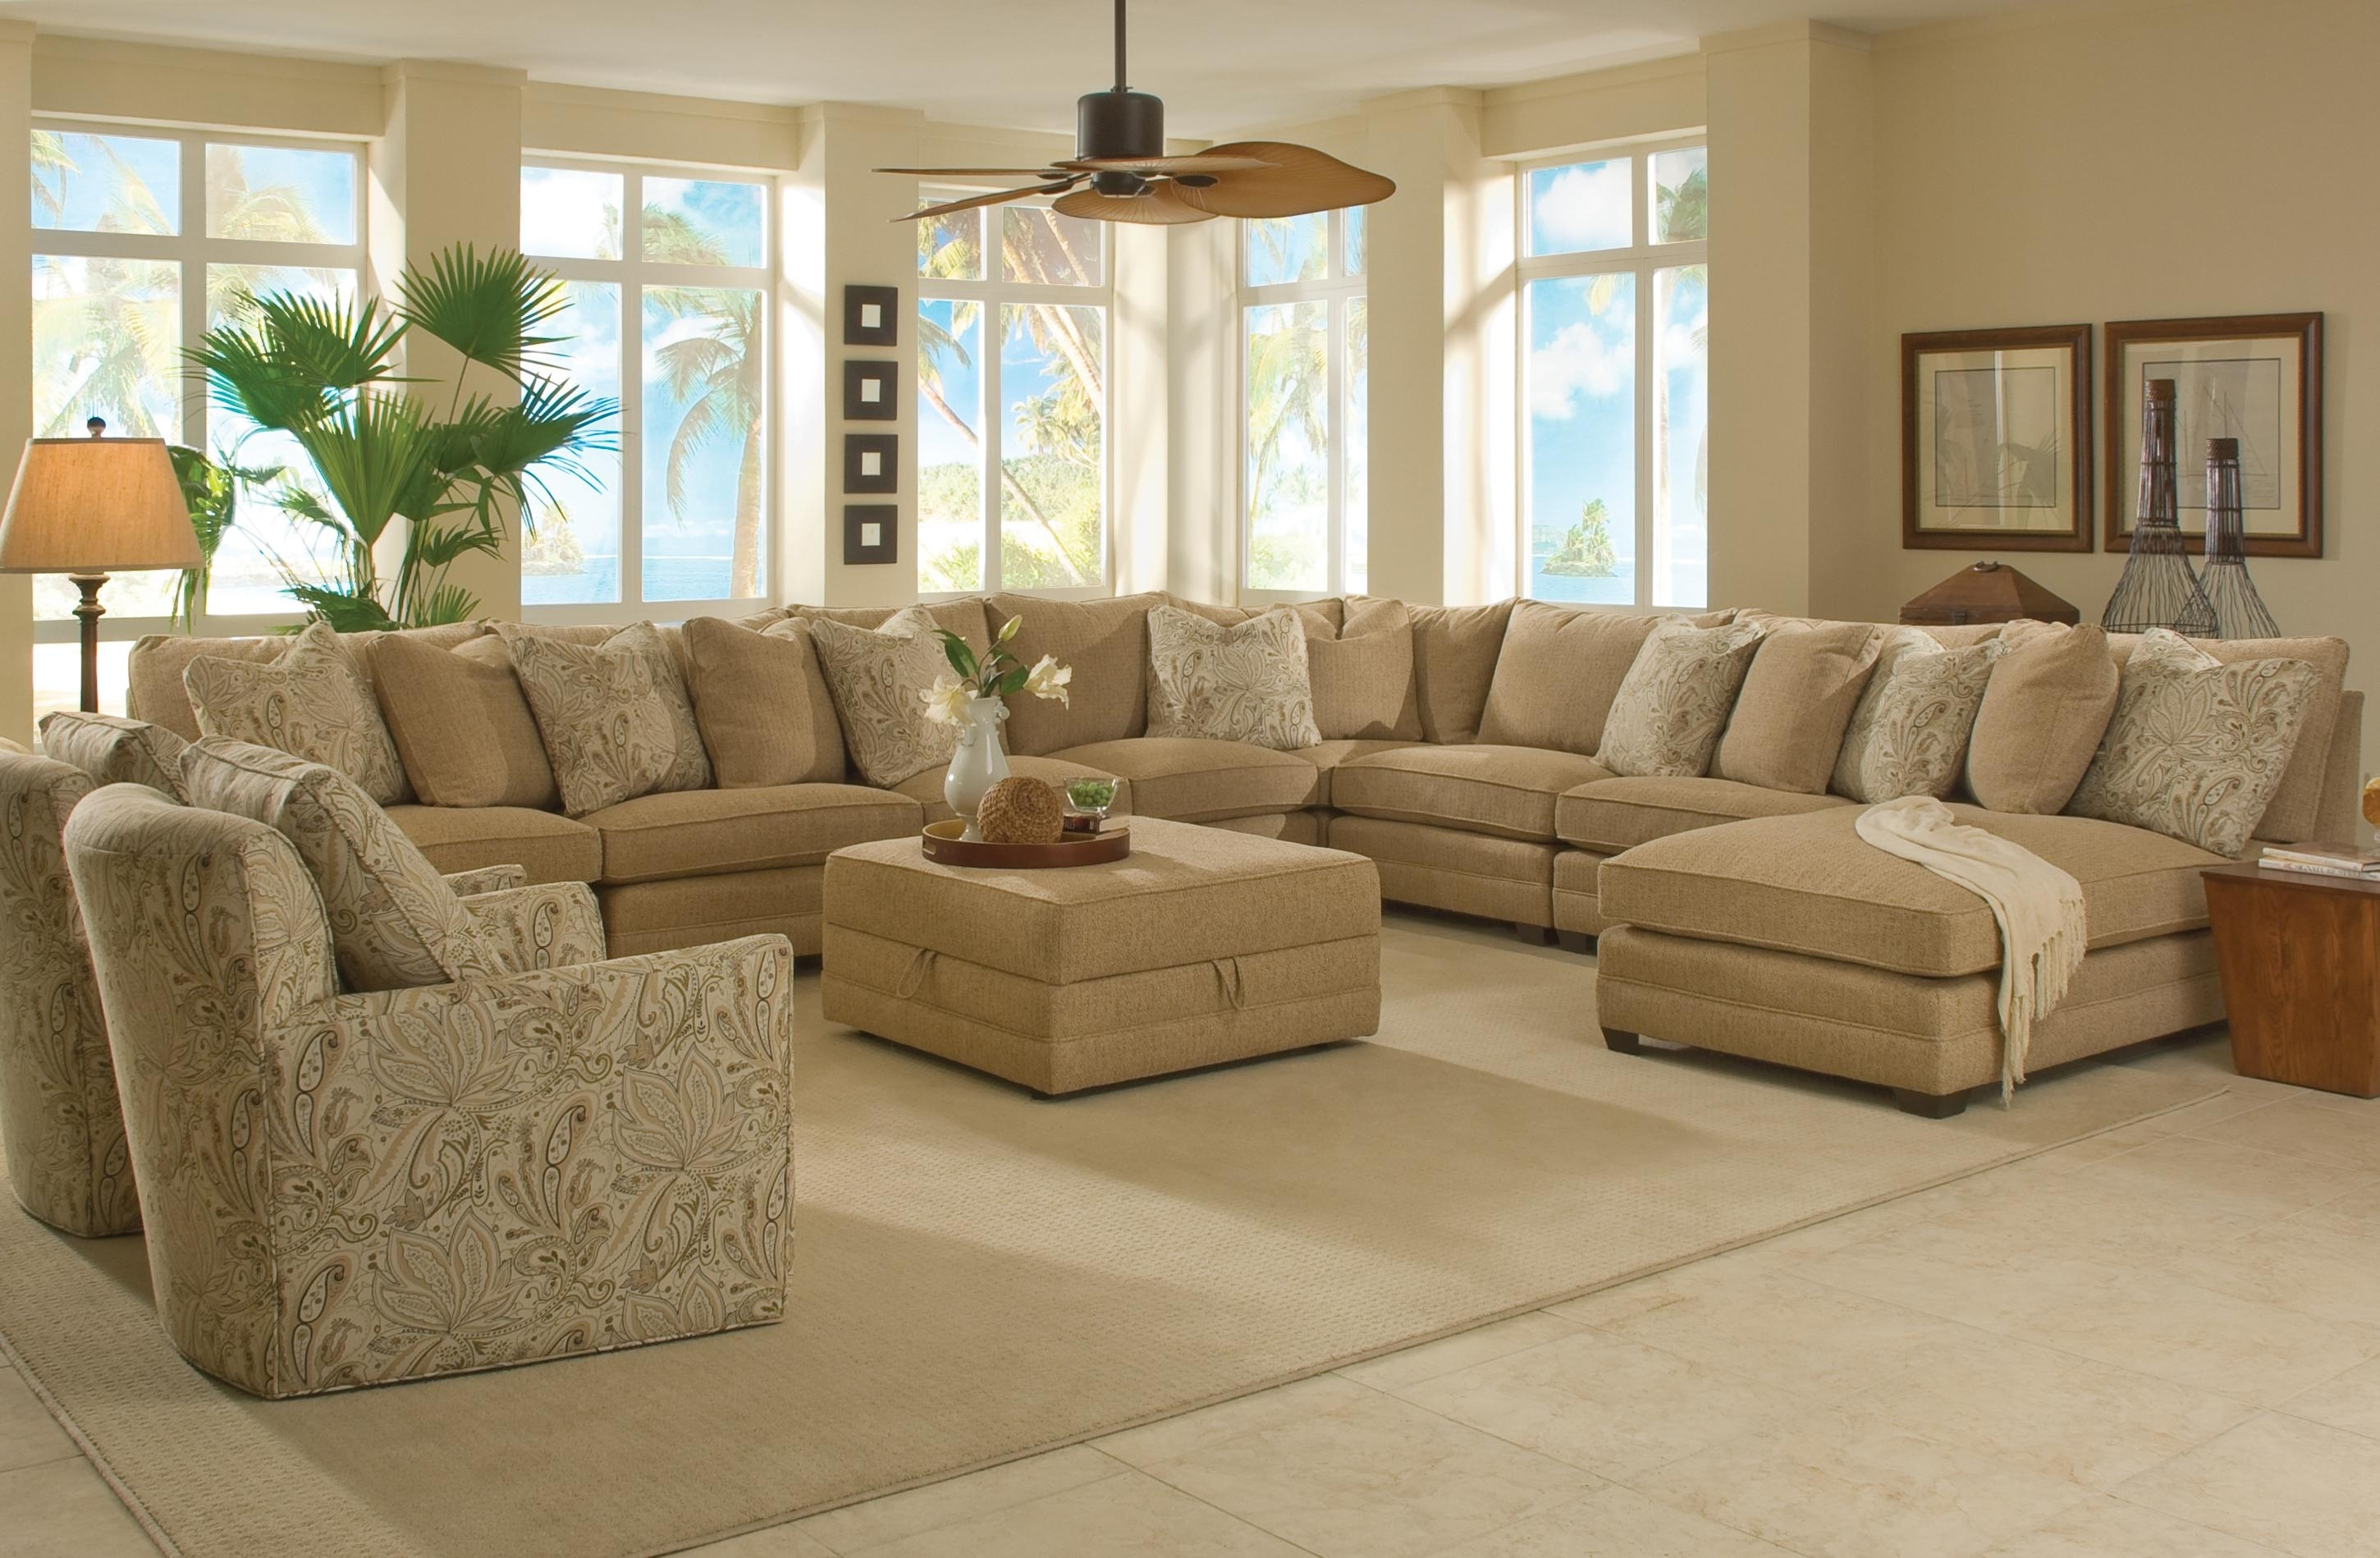 Sectional Sofas Austin - Home And Textiles with regard to Austin Sectional Sofas (Image 4 of 10)